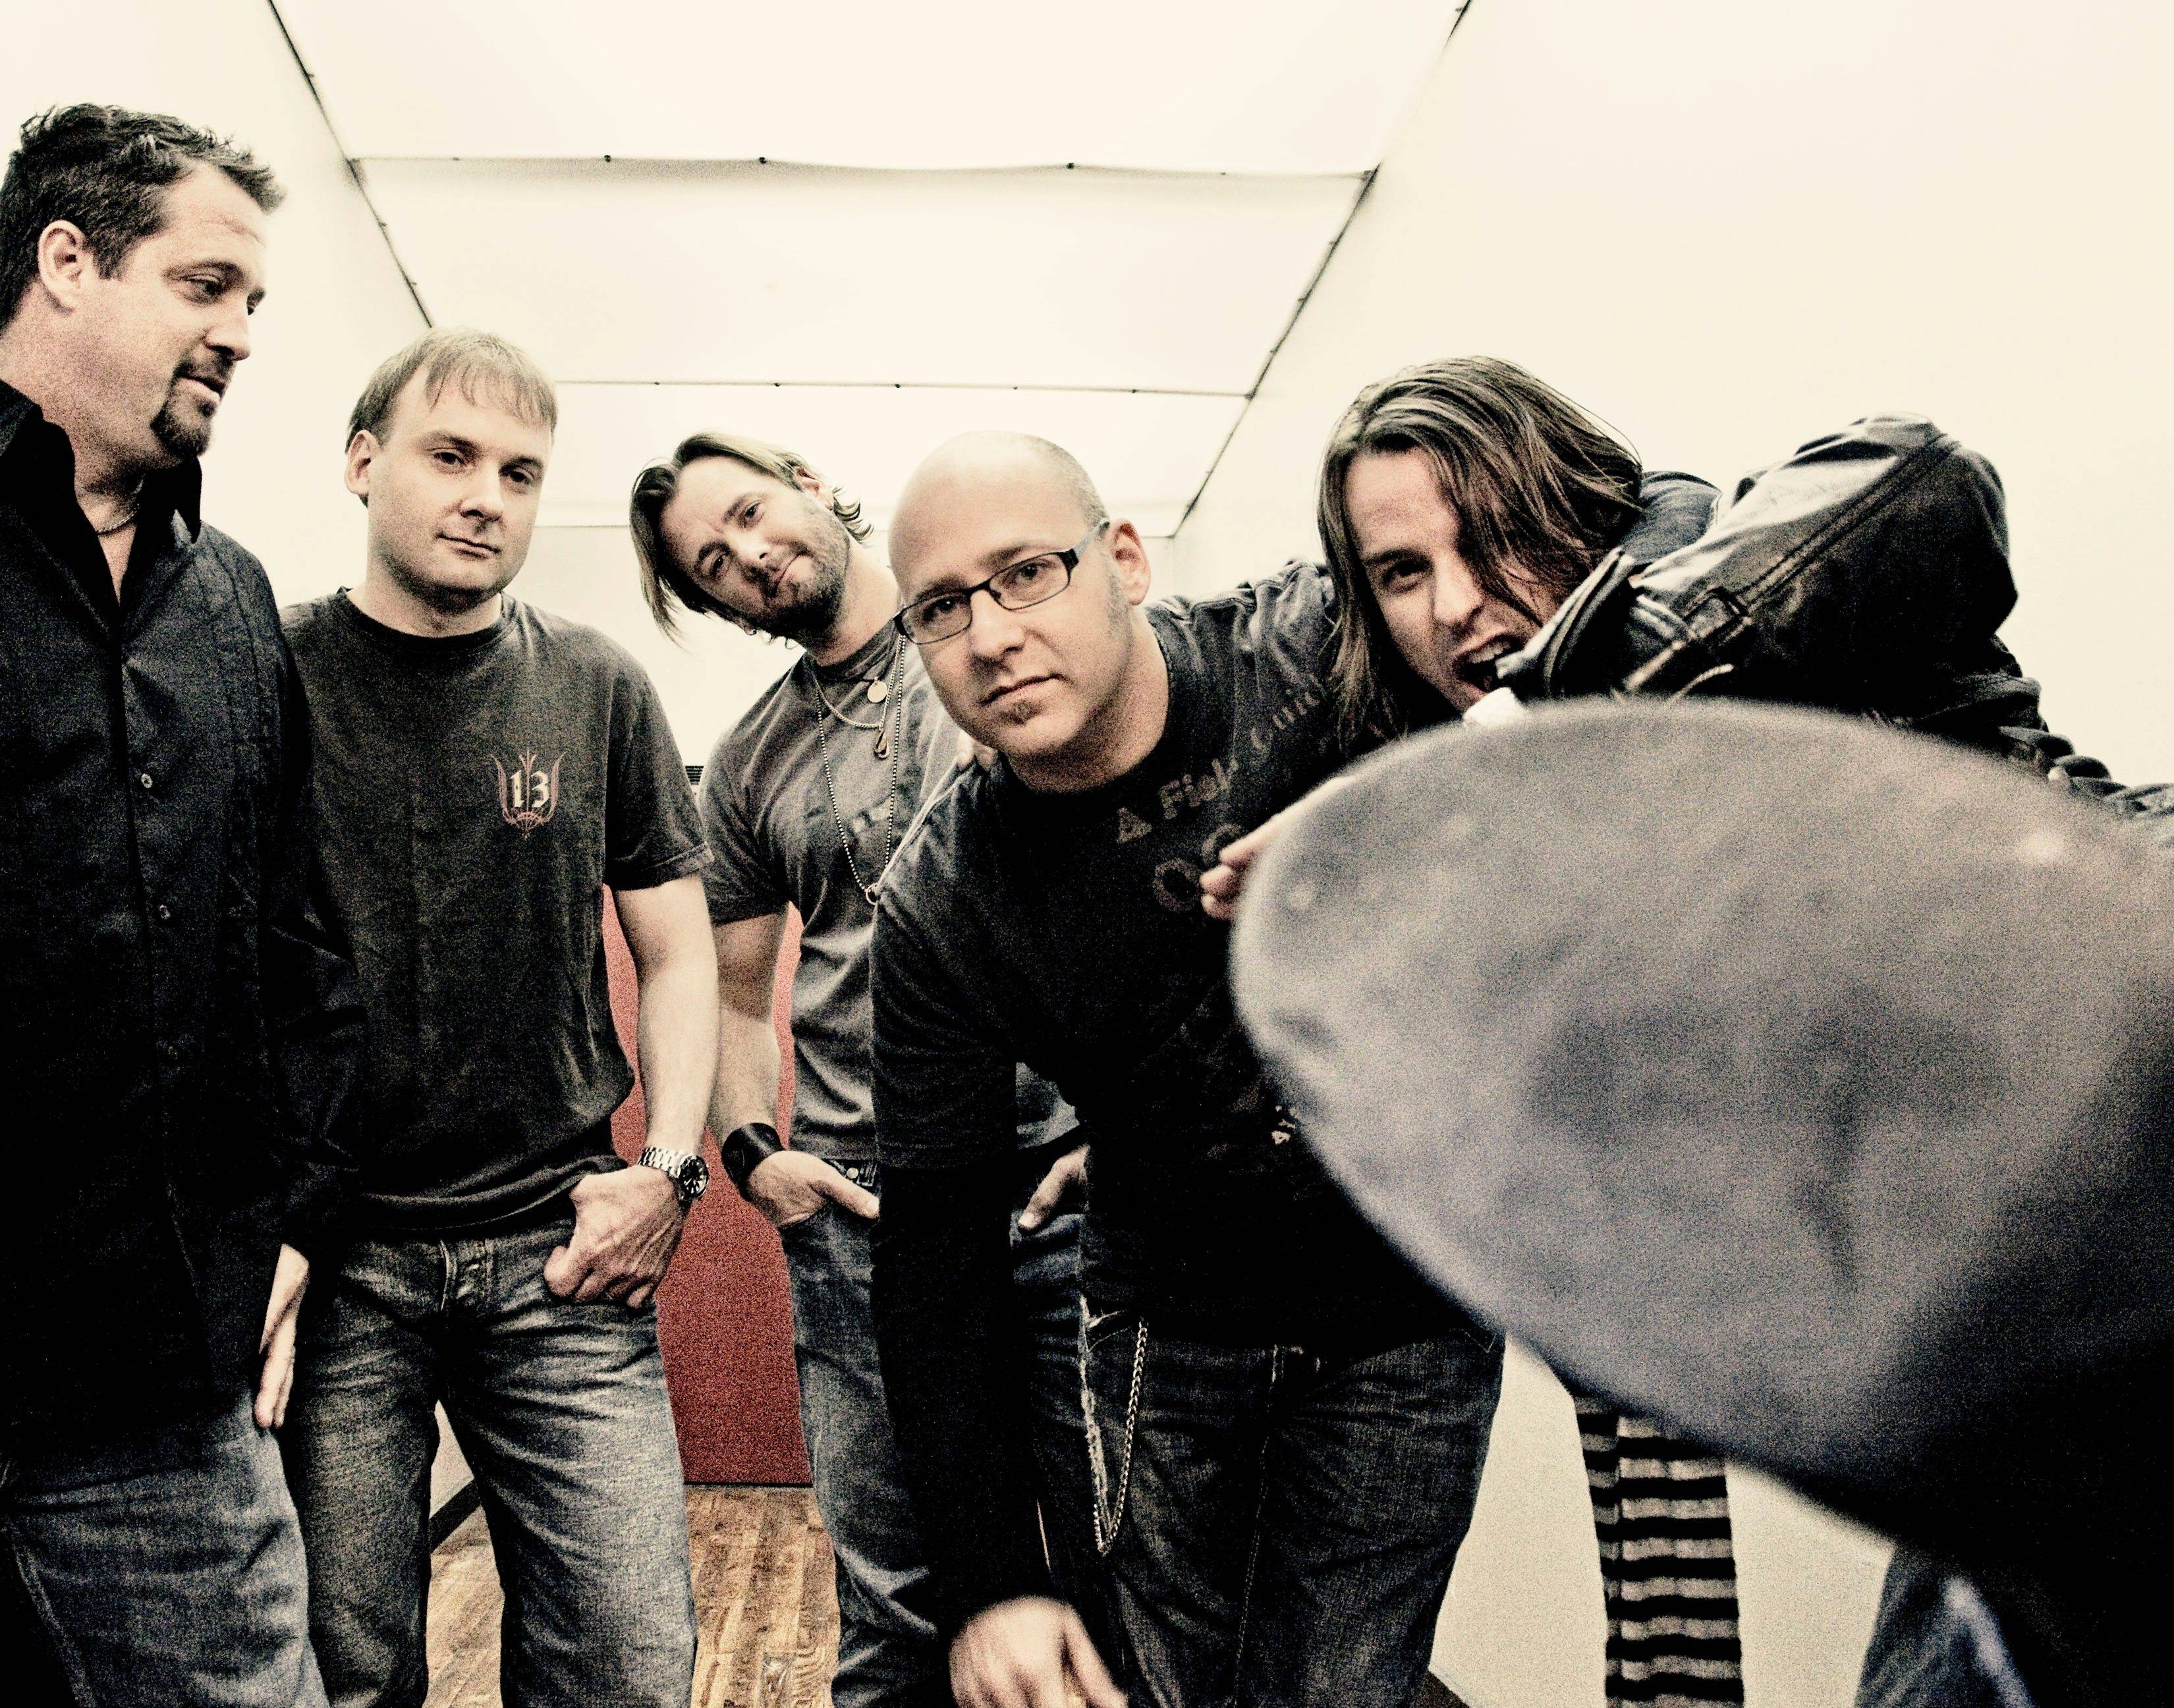 Sister Hazel will bring melodic alt-rock to Peggy Kinnane's Three-Day Music Fest.